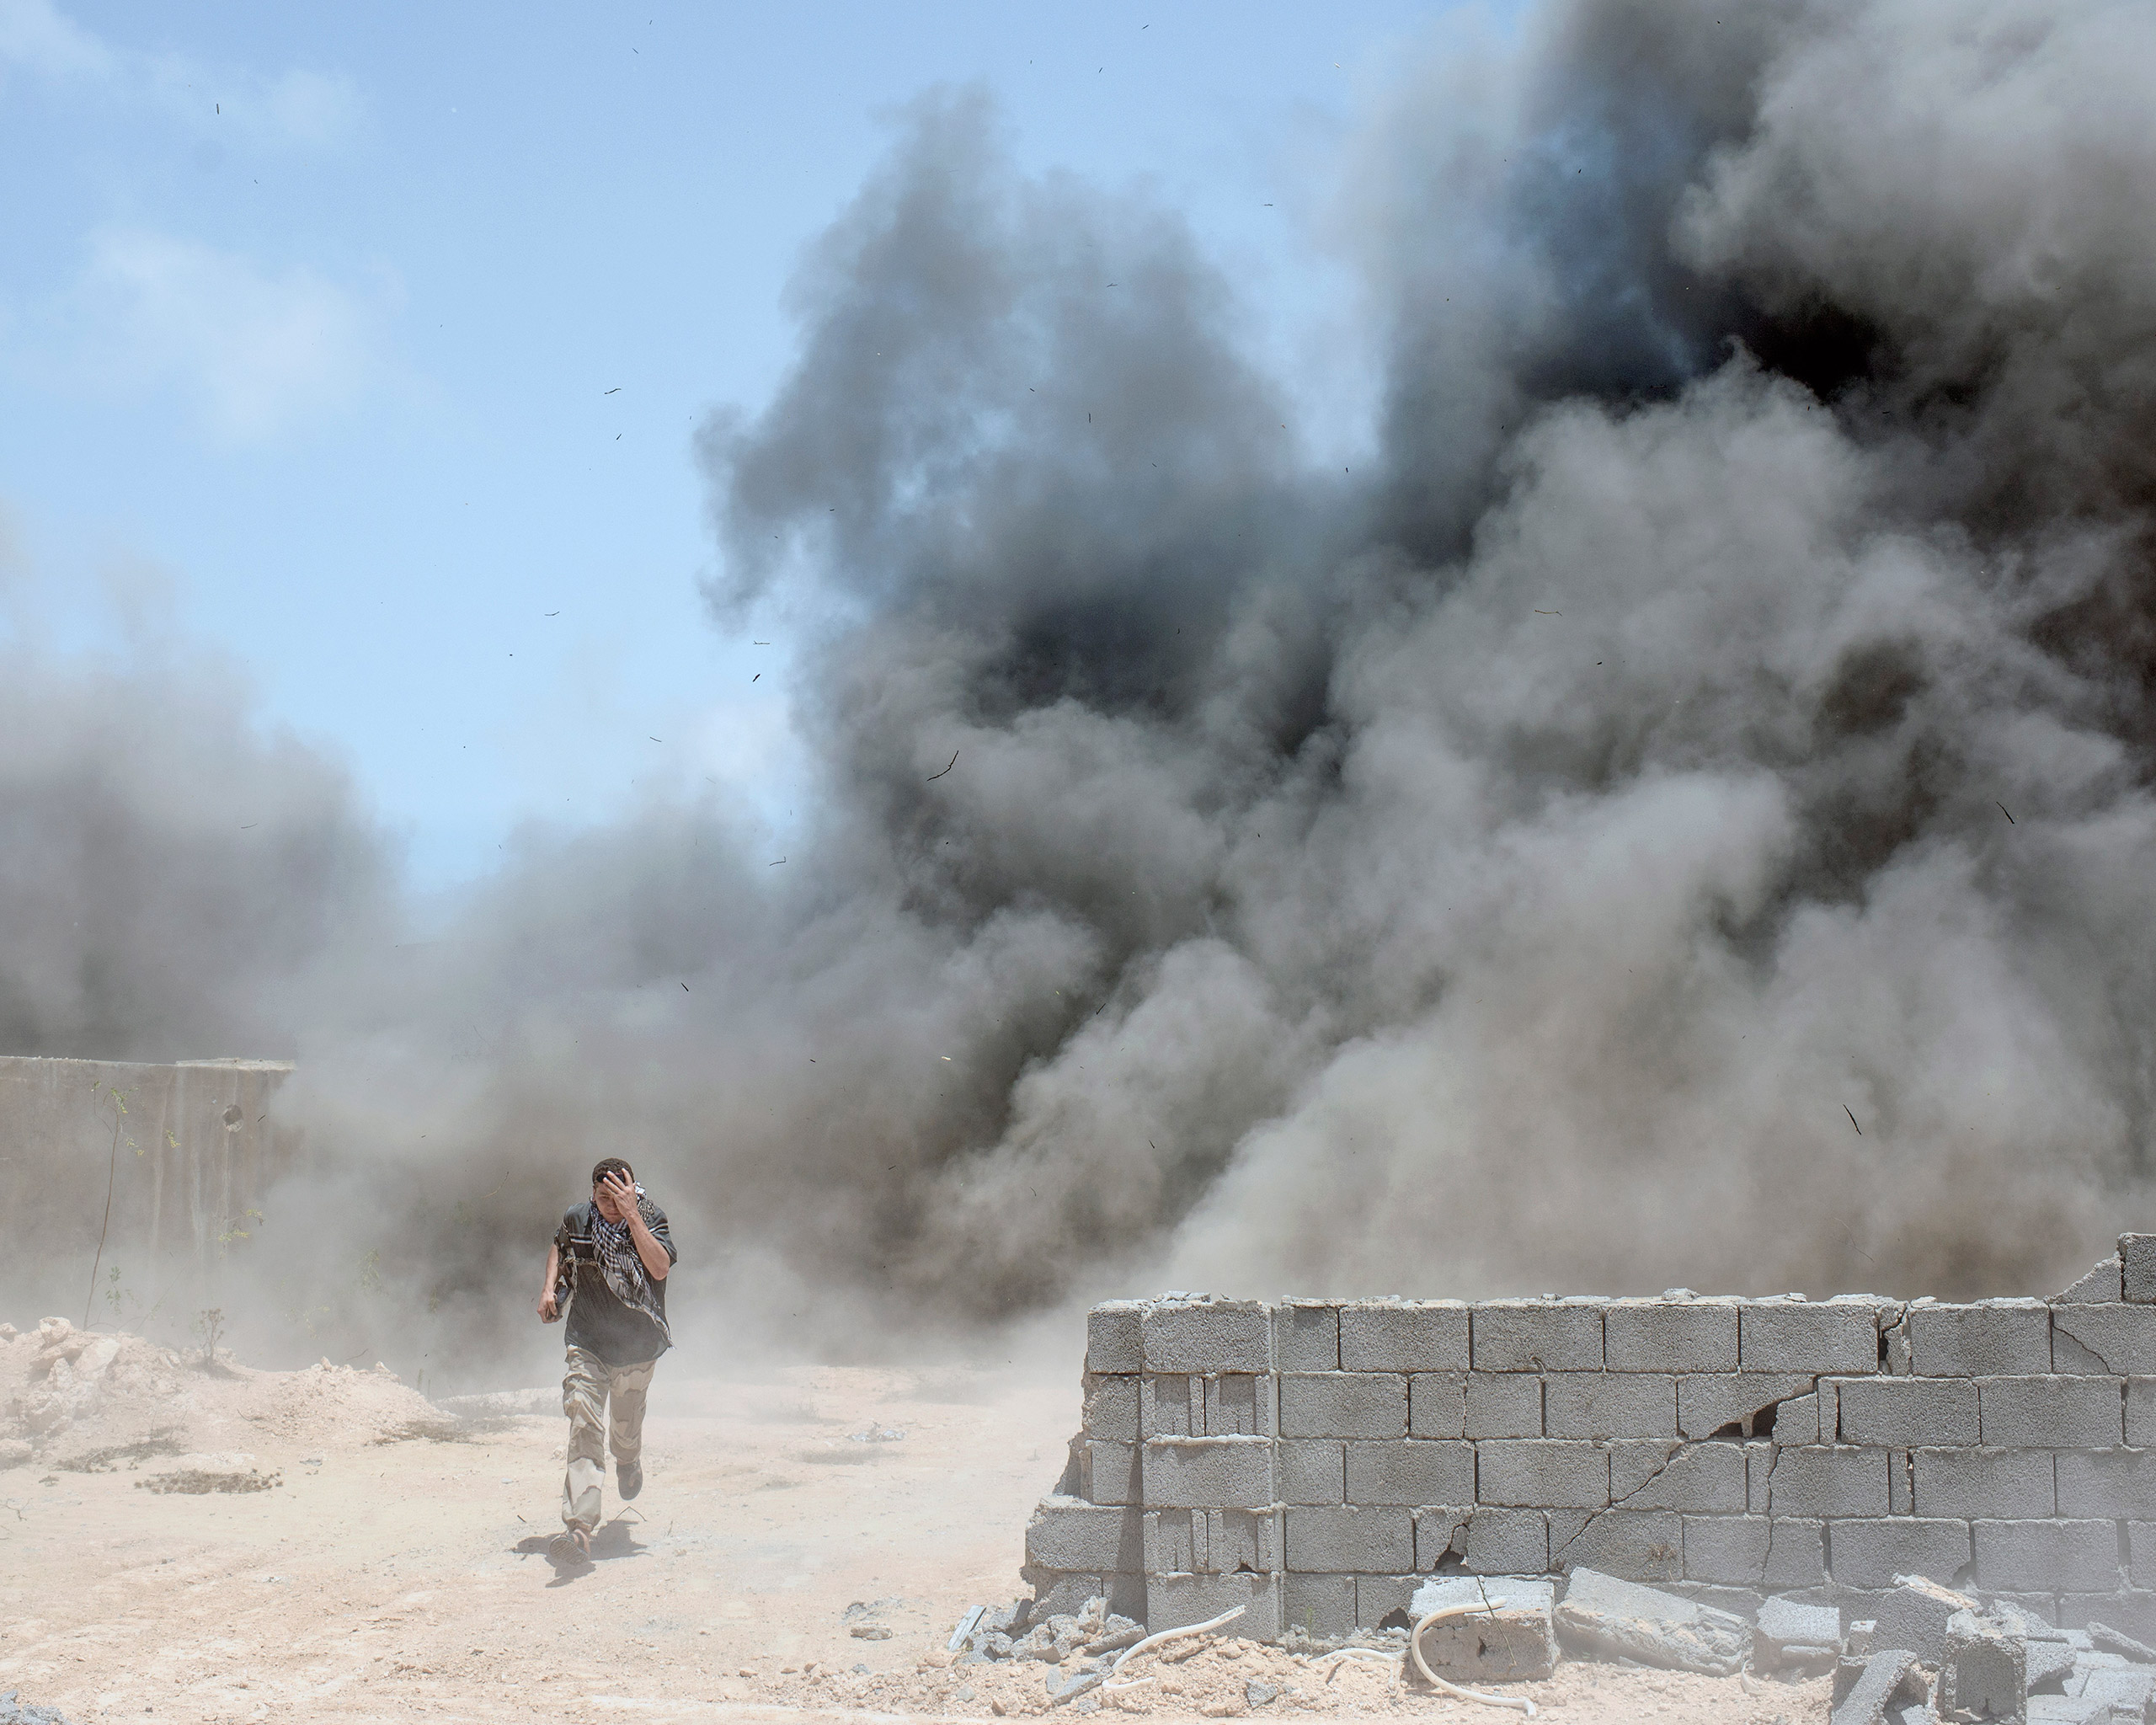 A Libyan fighter runs from a landmine explosion which injured three of his comrades, Sirt, Libya, July 2016.From  Inside ISIS' Last Bastion in Libya